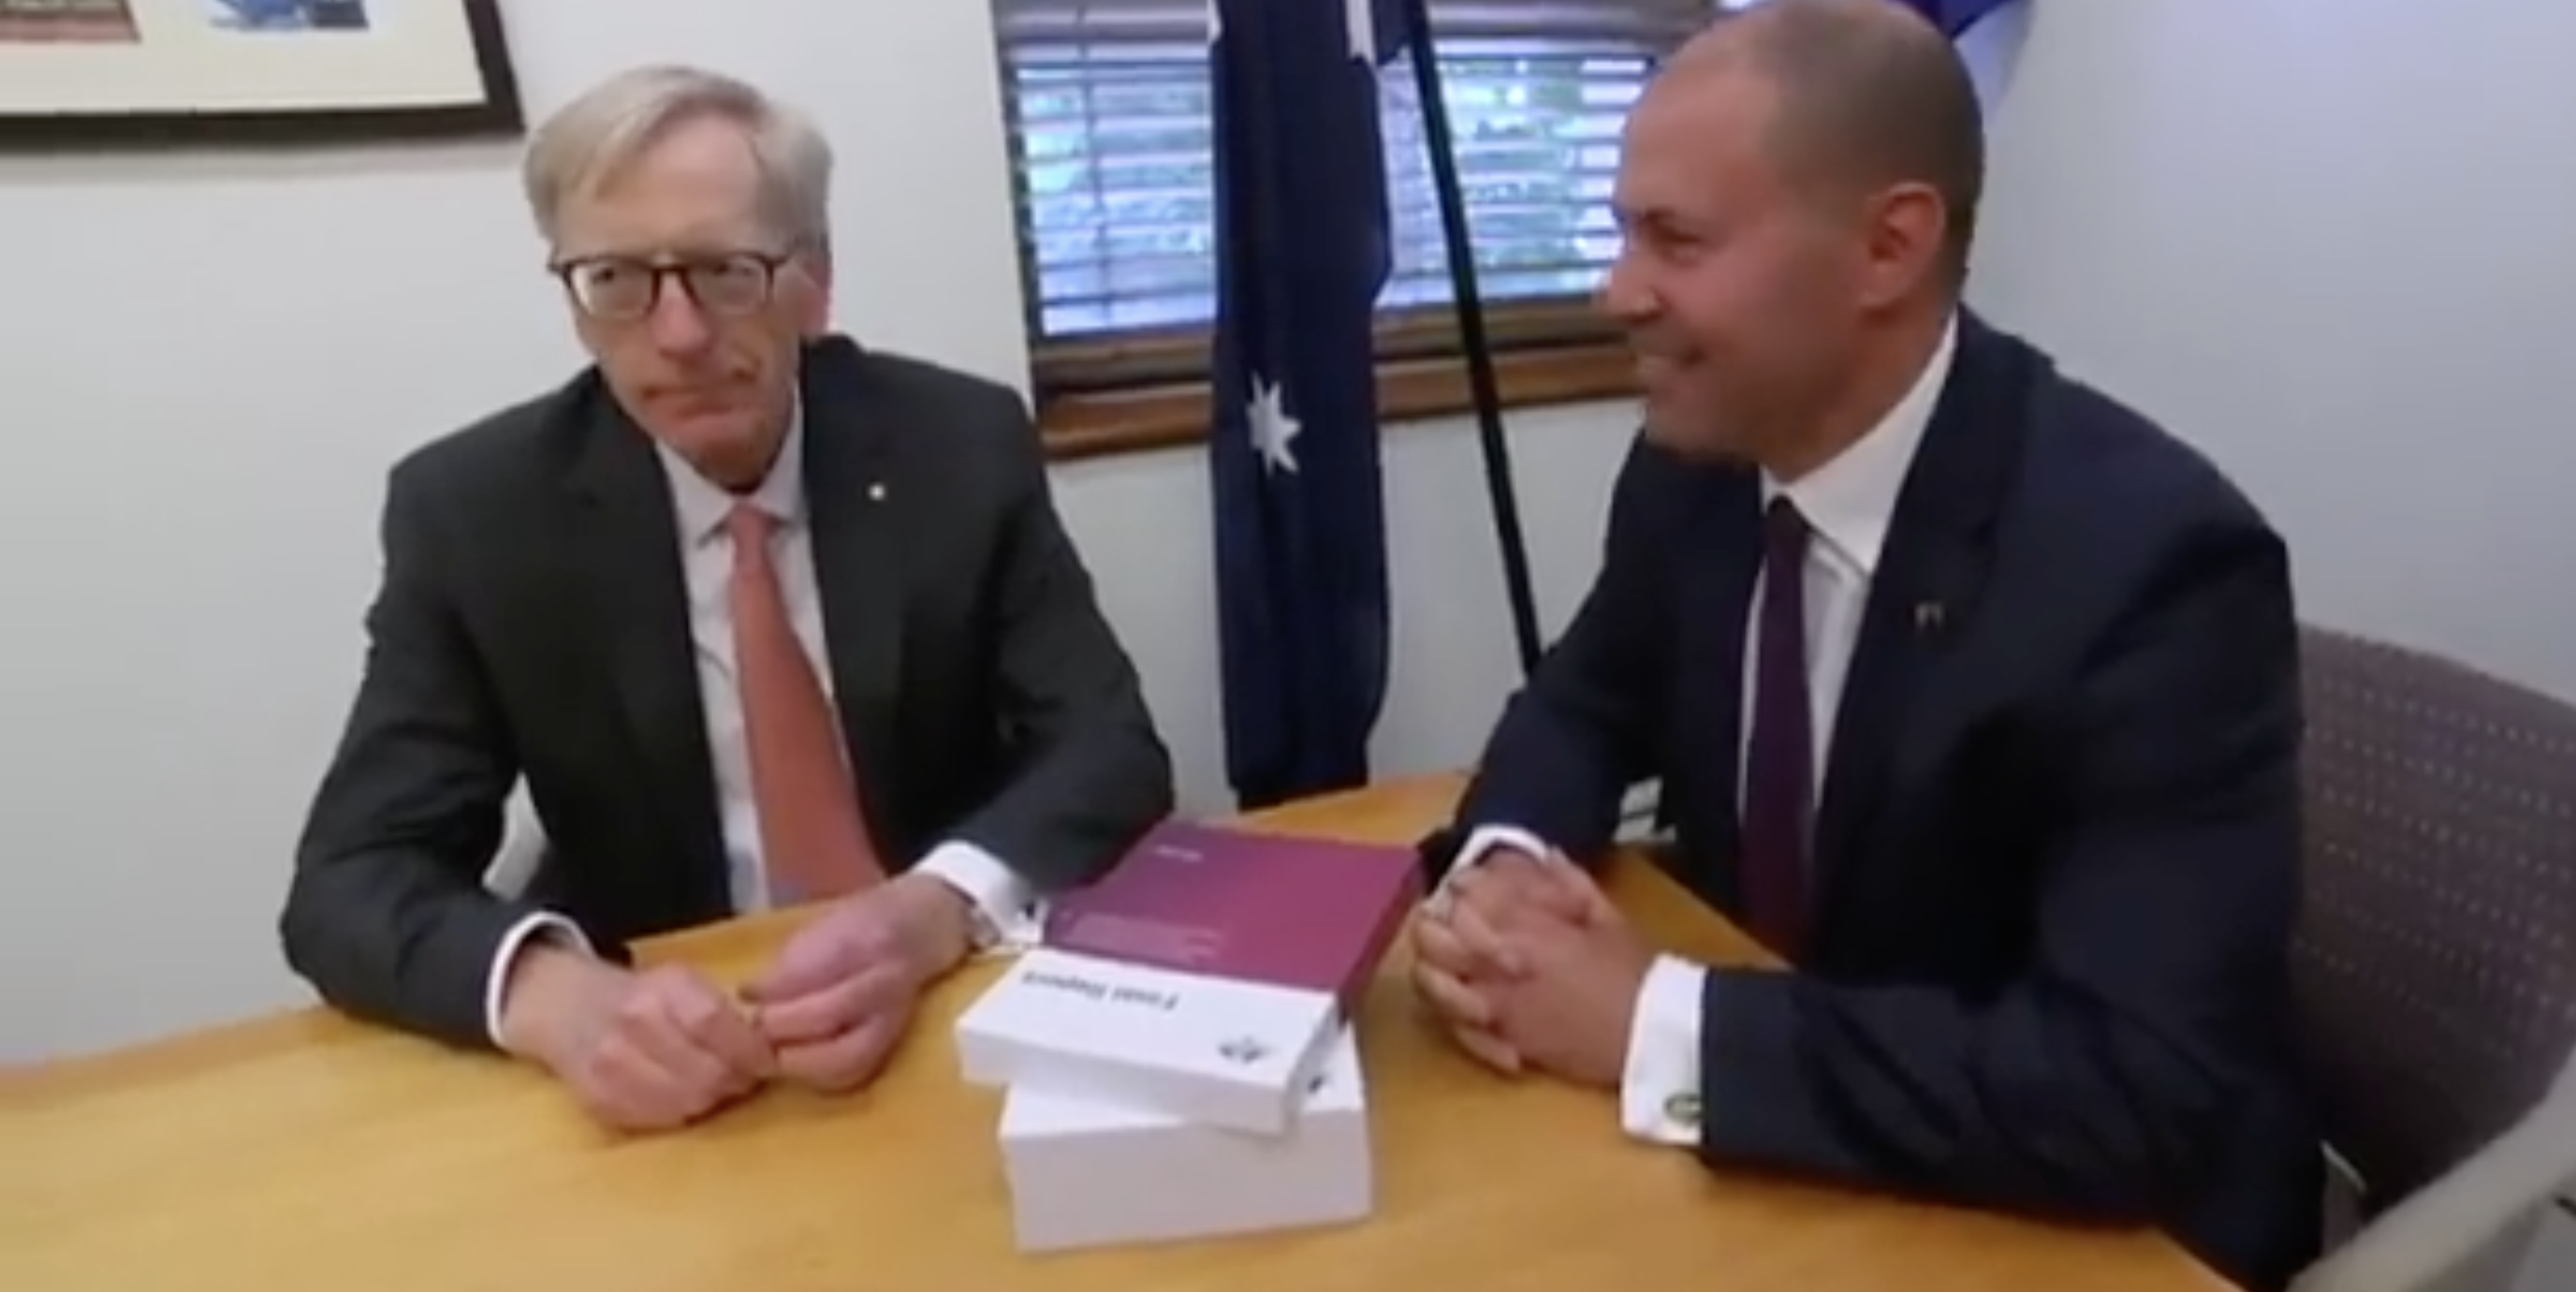 Commissioner Kenneth Hayne giving Treasurer Josh Frydenberg the final report from the Banking Royal Commission on Friday.